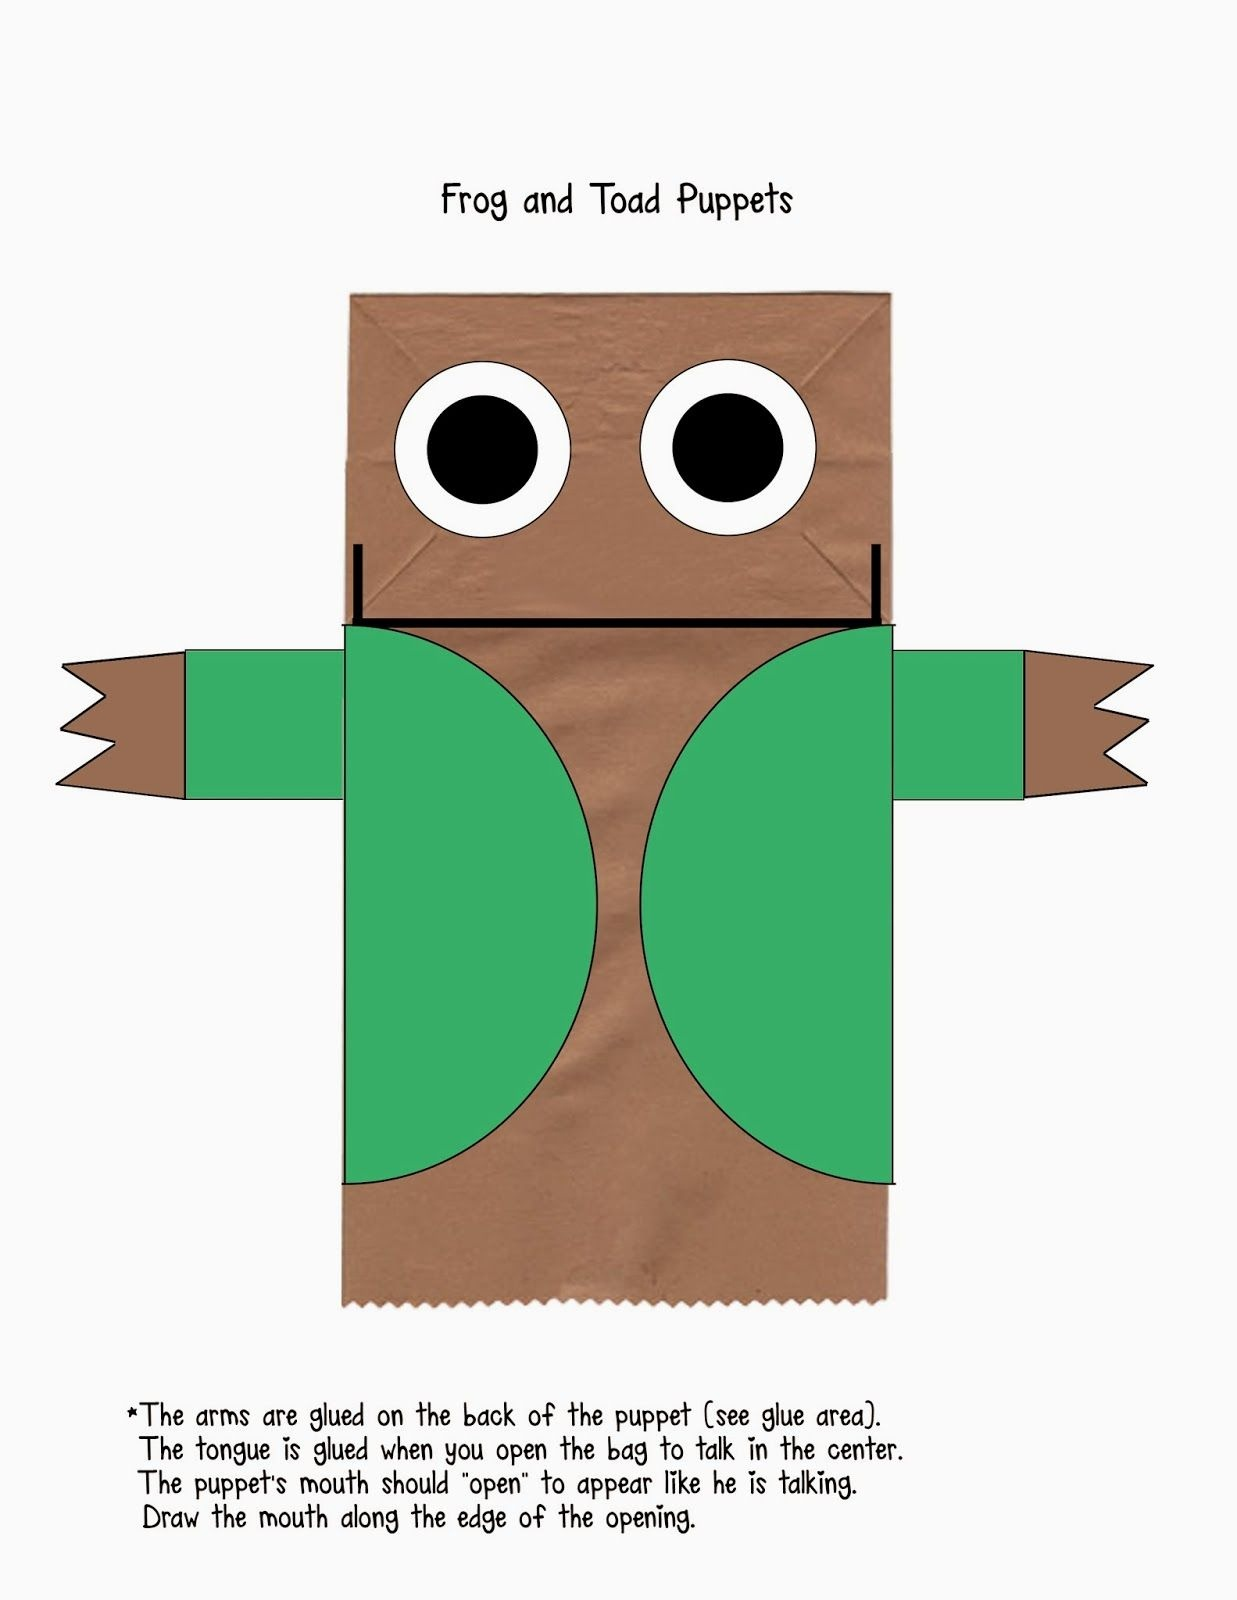 Frog And Toad Puppets. Free Printables To Make Your Own To Go With - Free Frog And Toad Are Friends Printables